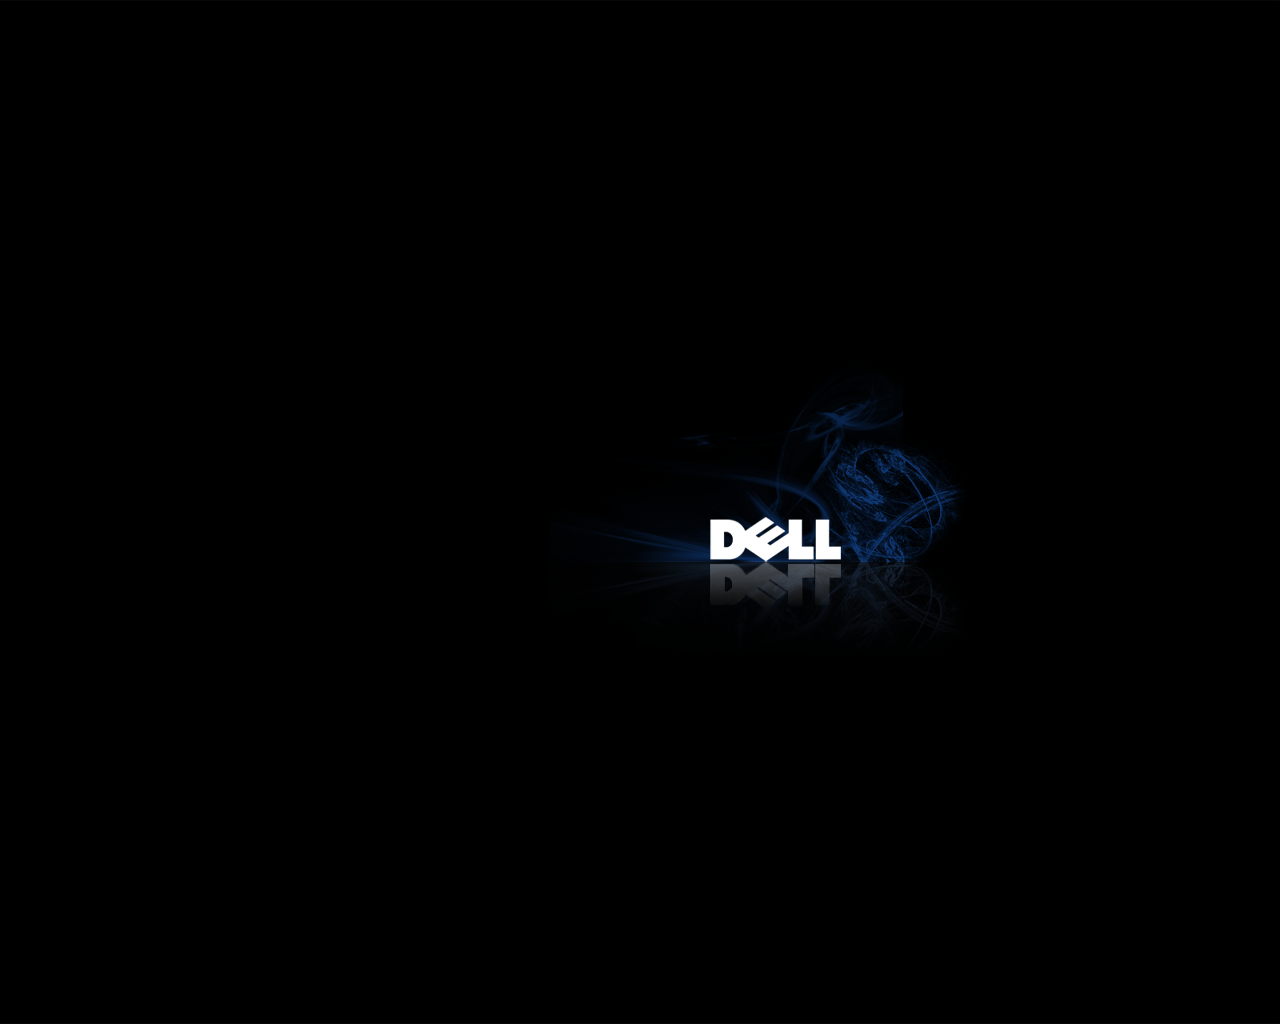 dell computers wallpaper logo - photo #26